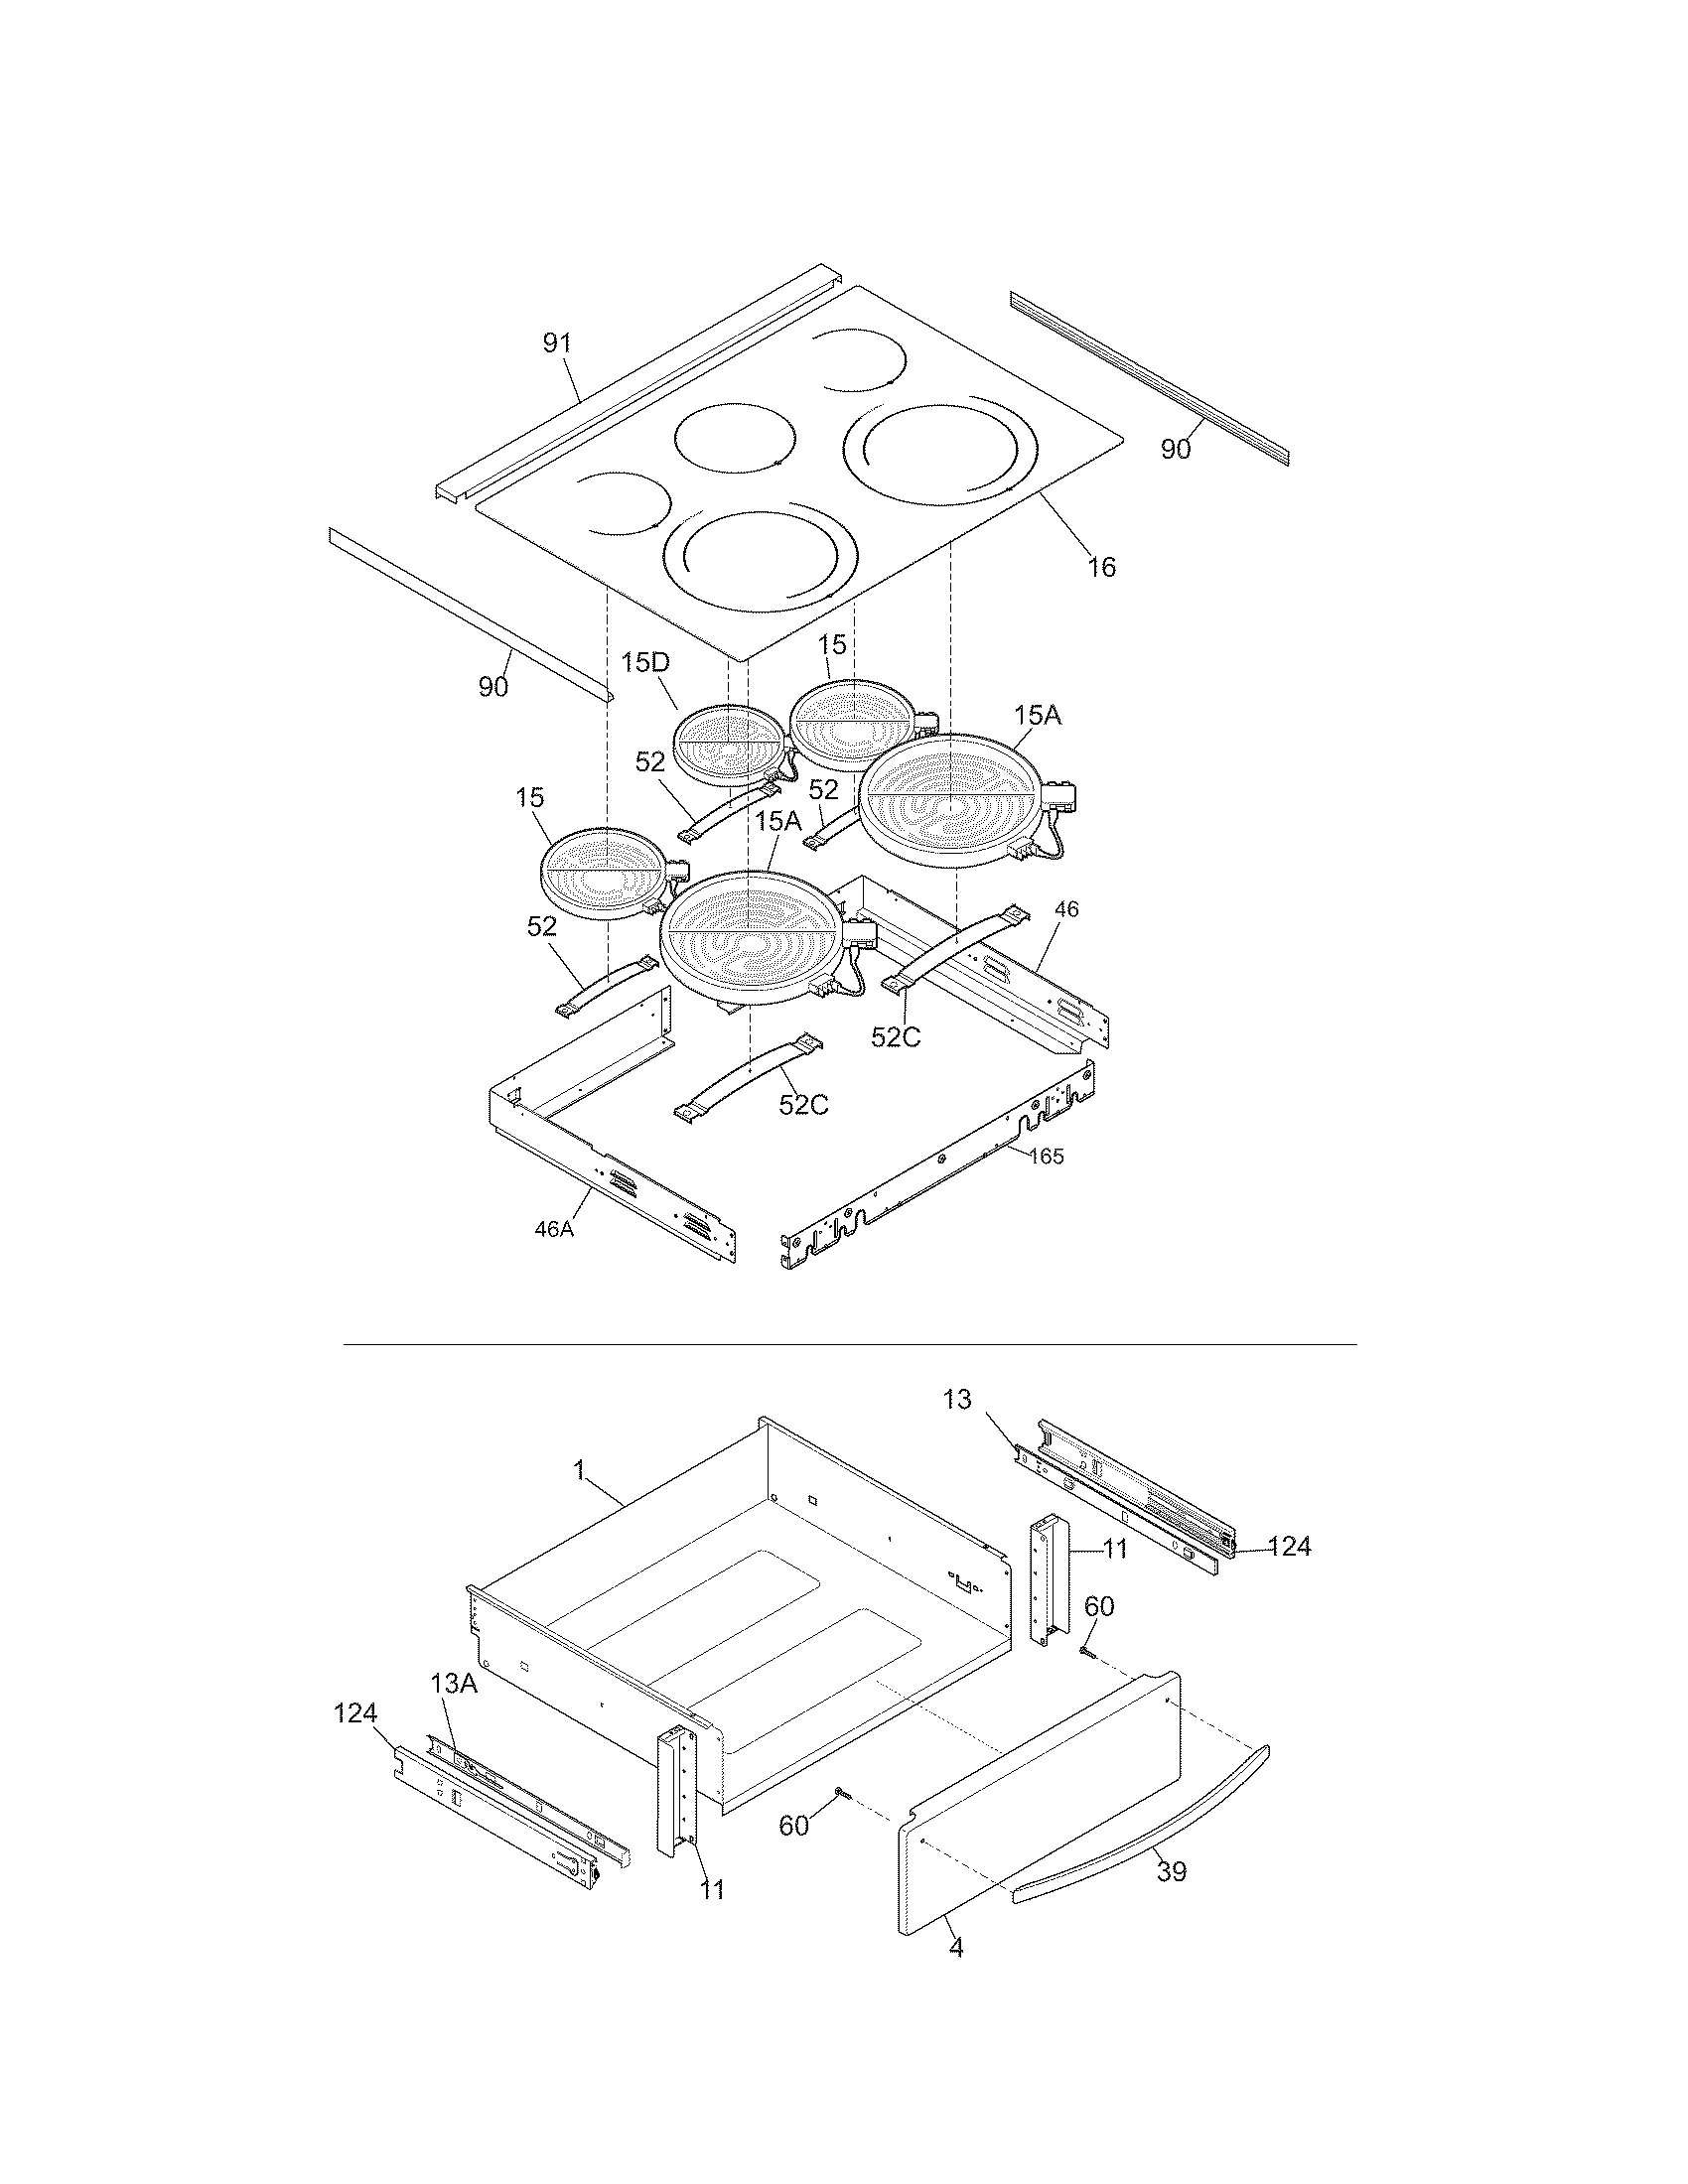 TOP/DRAWER Diagram & Parts List for Model 79041019803